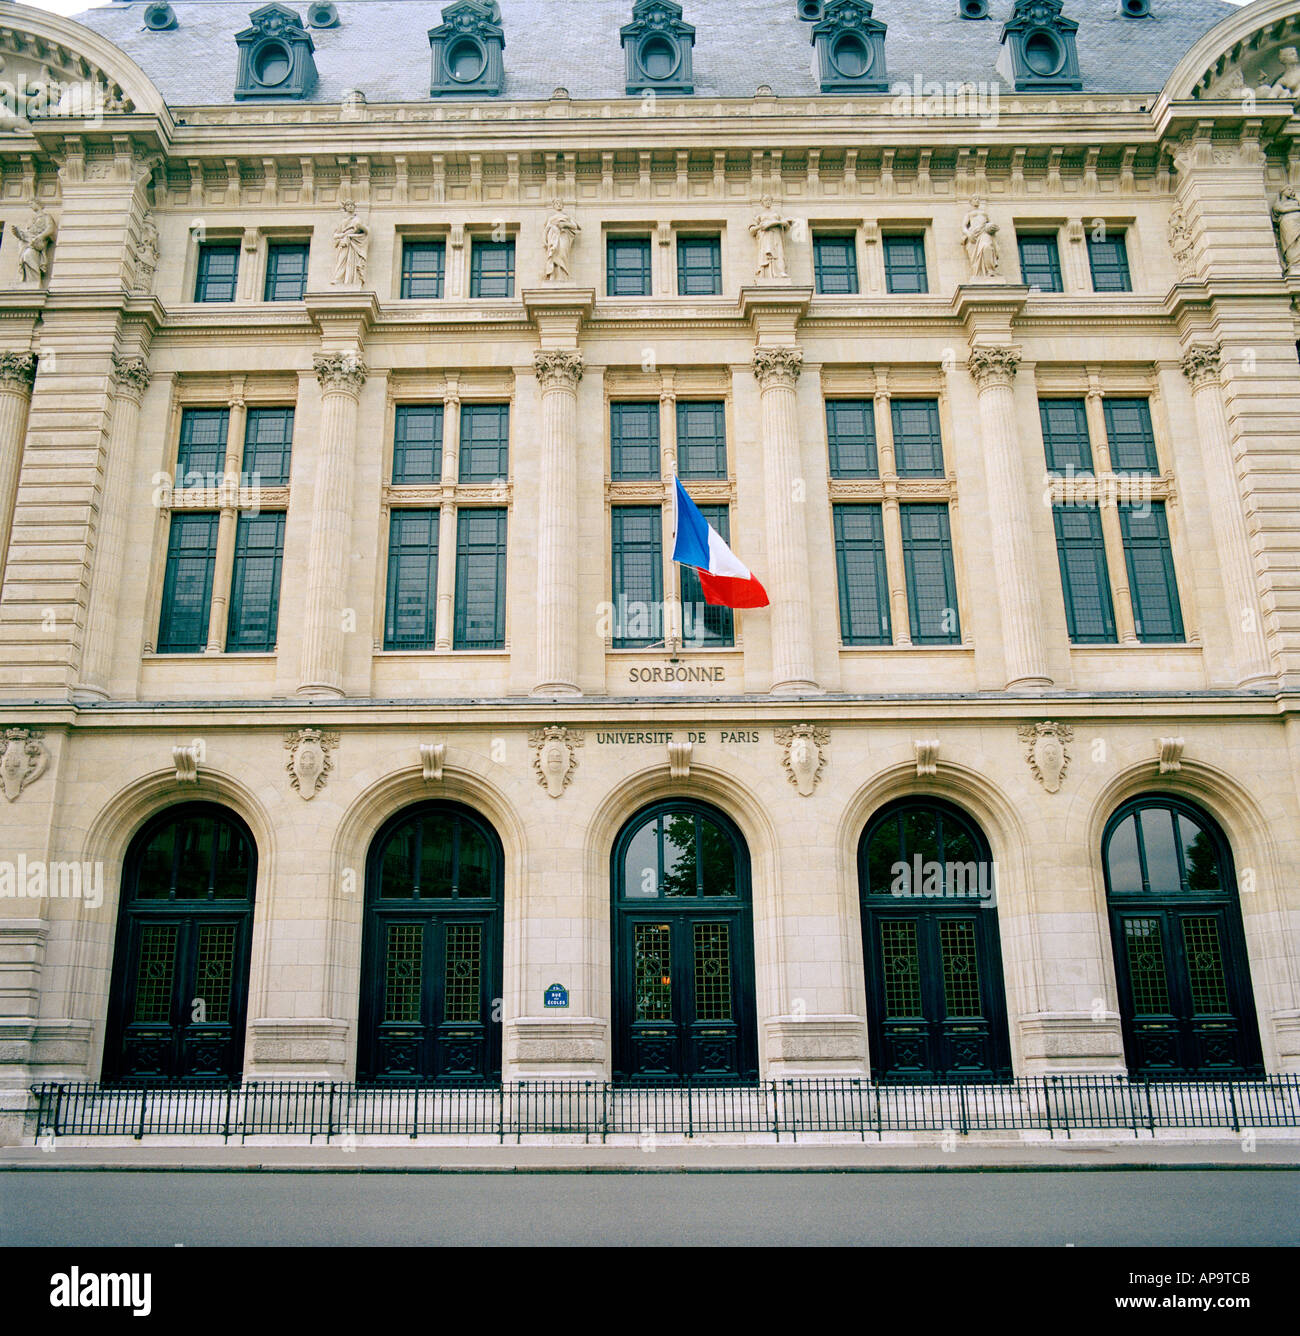 Sorbonne University in the city of Paris In France In Europe - Stock Image